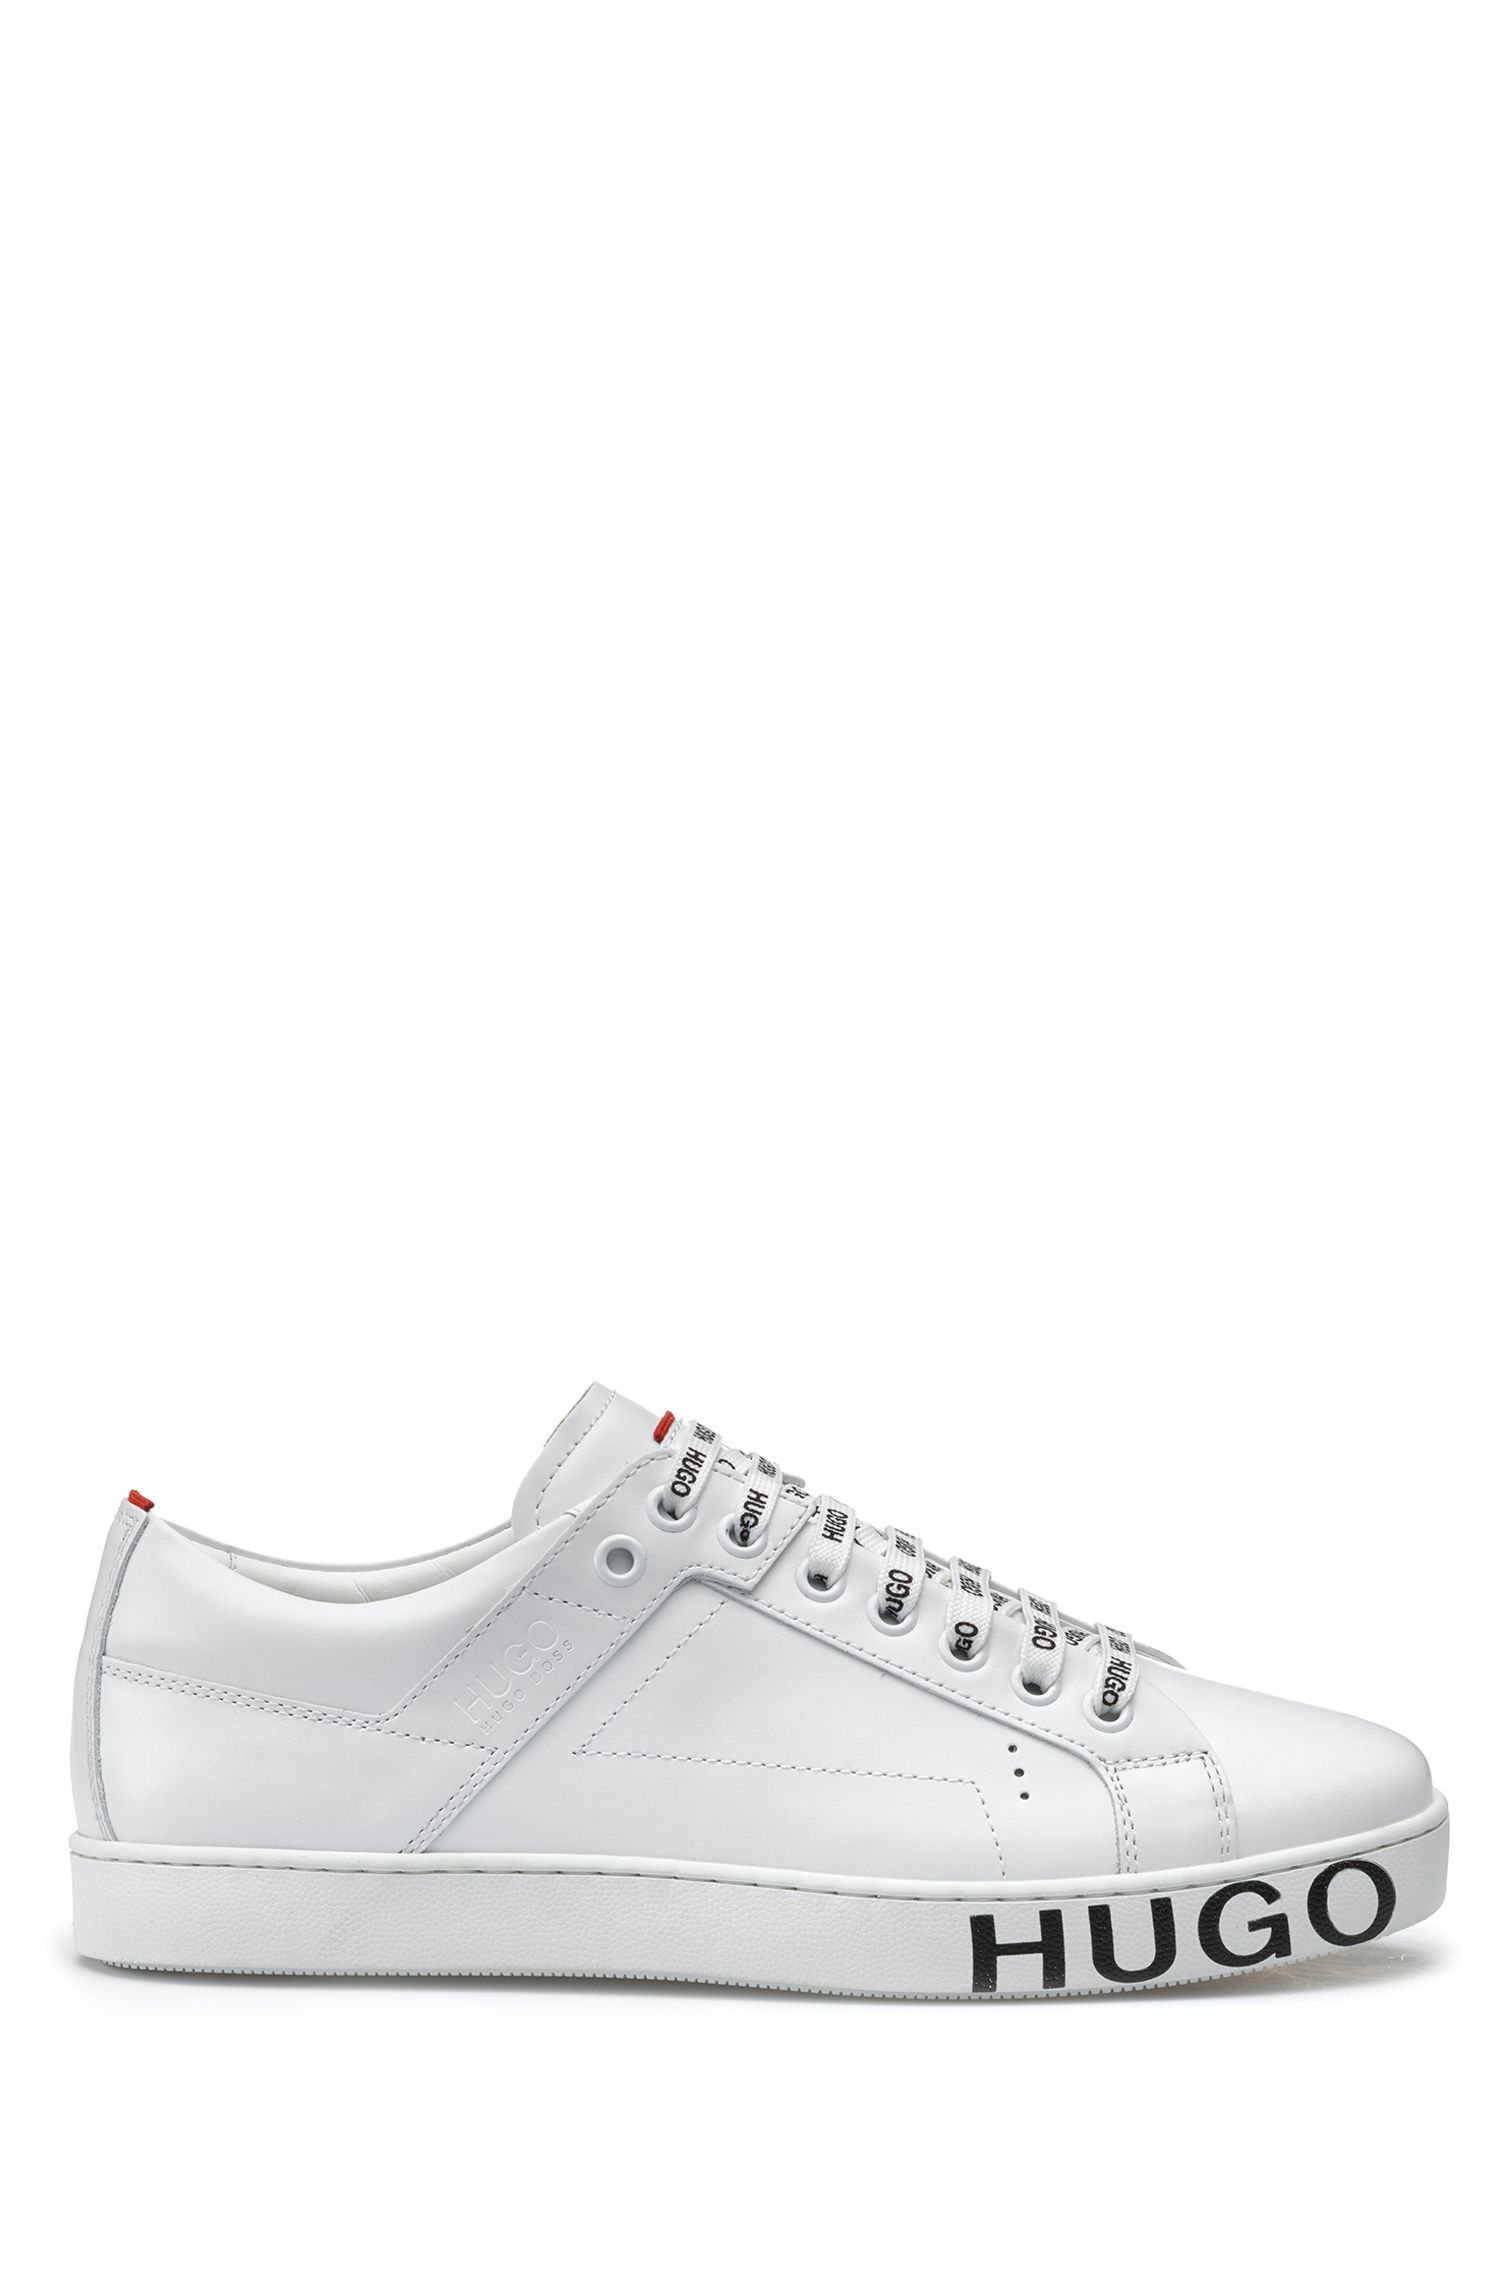 Low-top trainers in Italian leather with statement logo, White